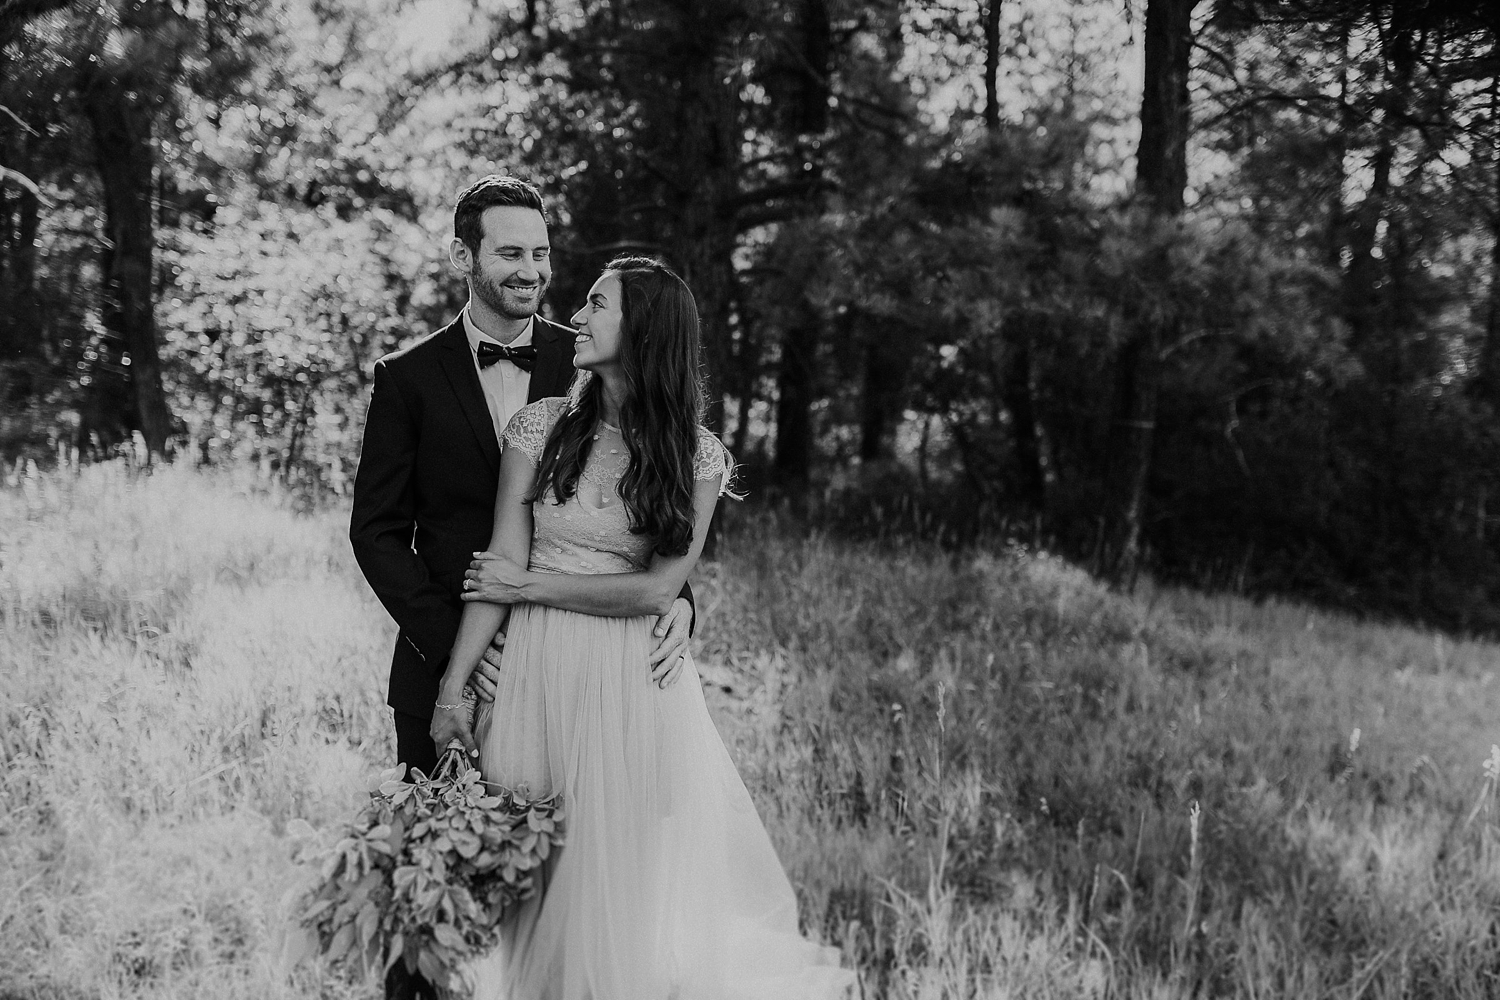 Alicia+lucia+photography+-+albuquerque+wedding+photographer+-+santa+fe+wedding+photography+-+new+mexico+wedding+photographer+-+pagosa+springs+wedding+-+destination+wedding_0045.jpg